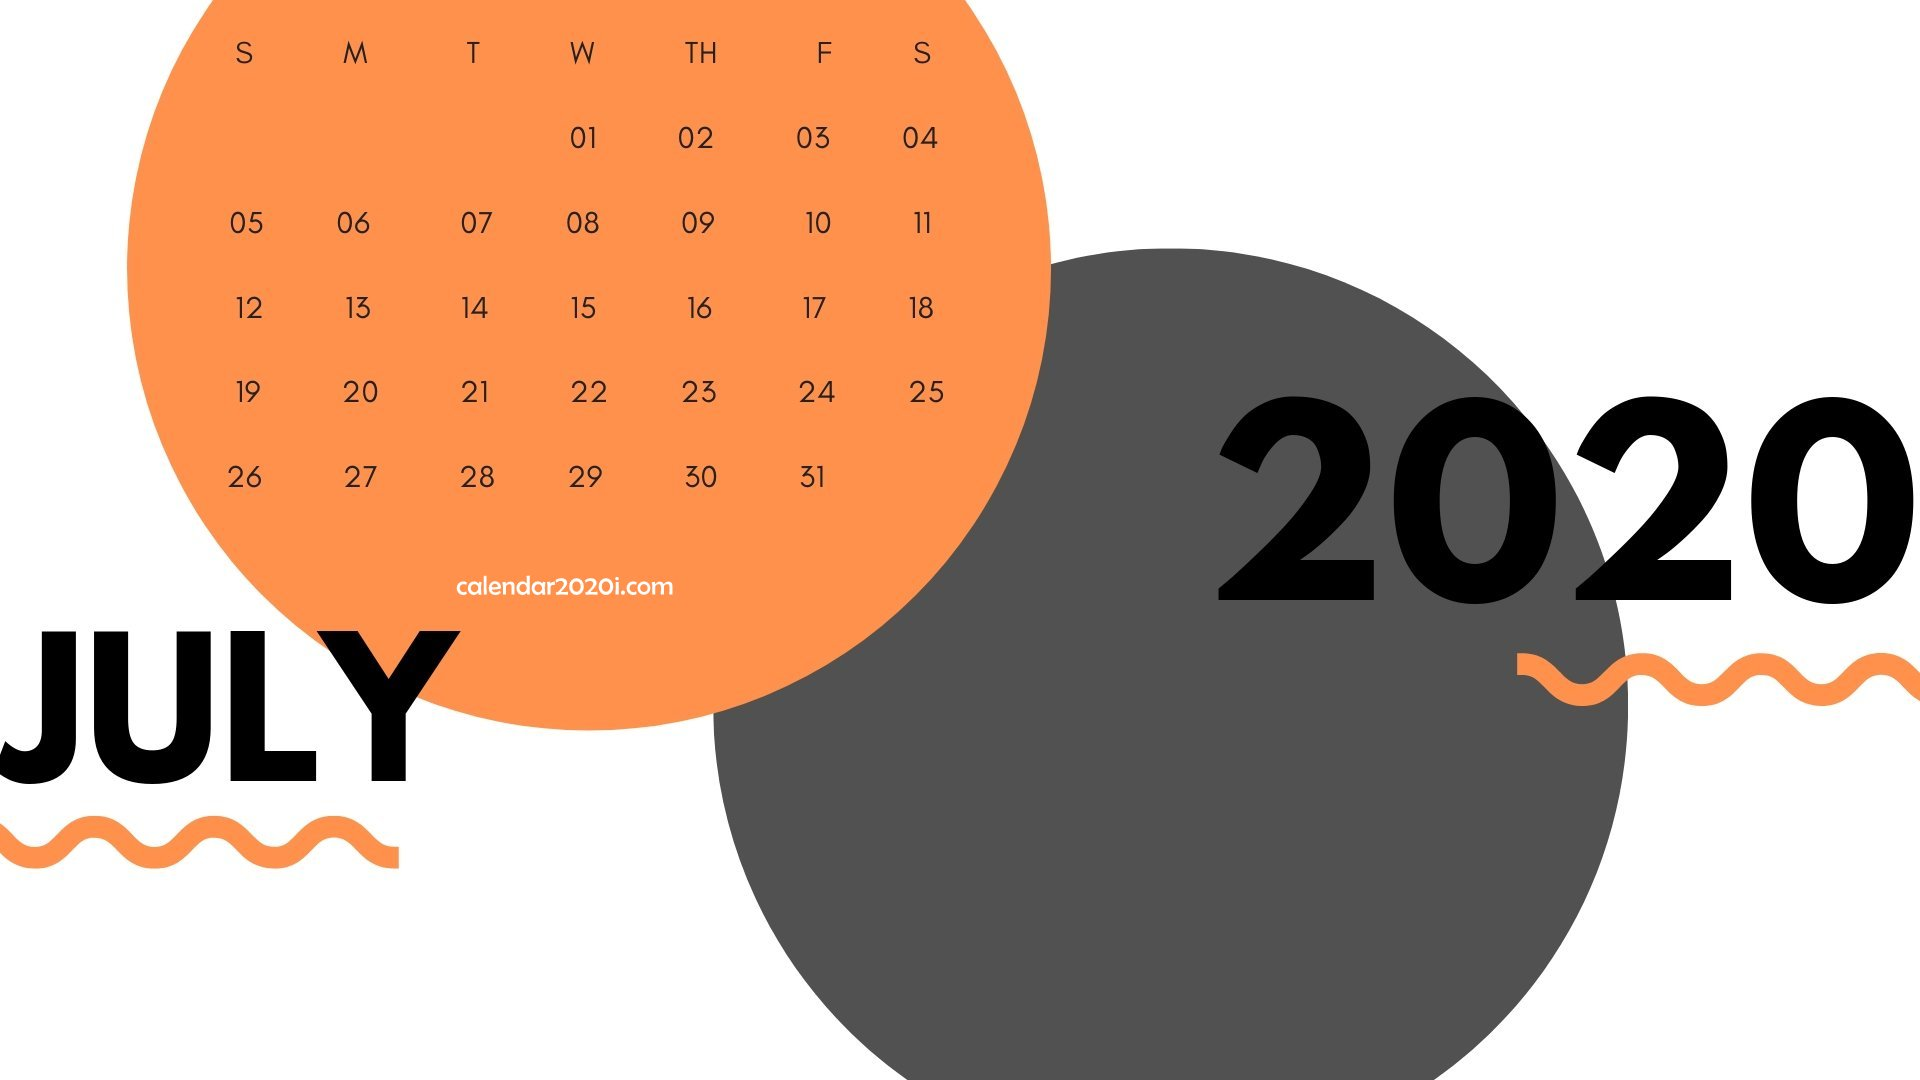 July 2020 Calendar Printable Template With Holidays 1920x1080